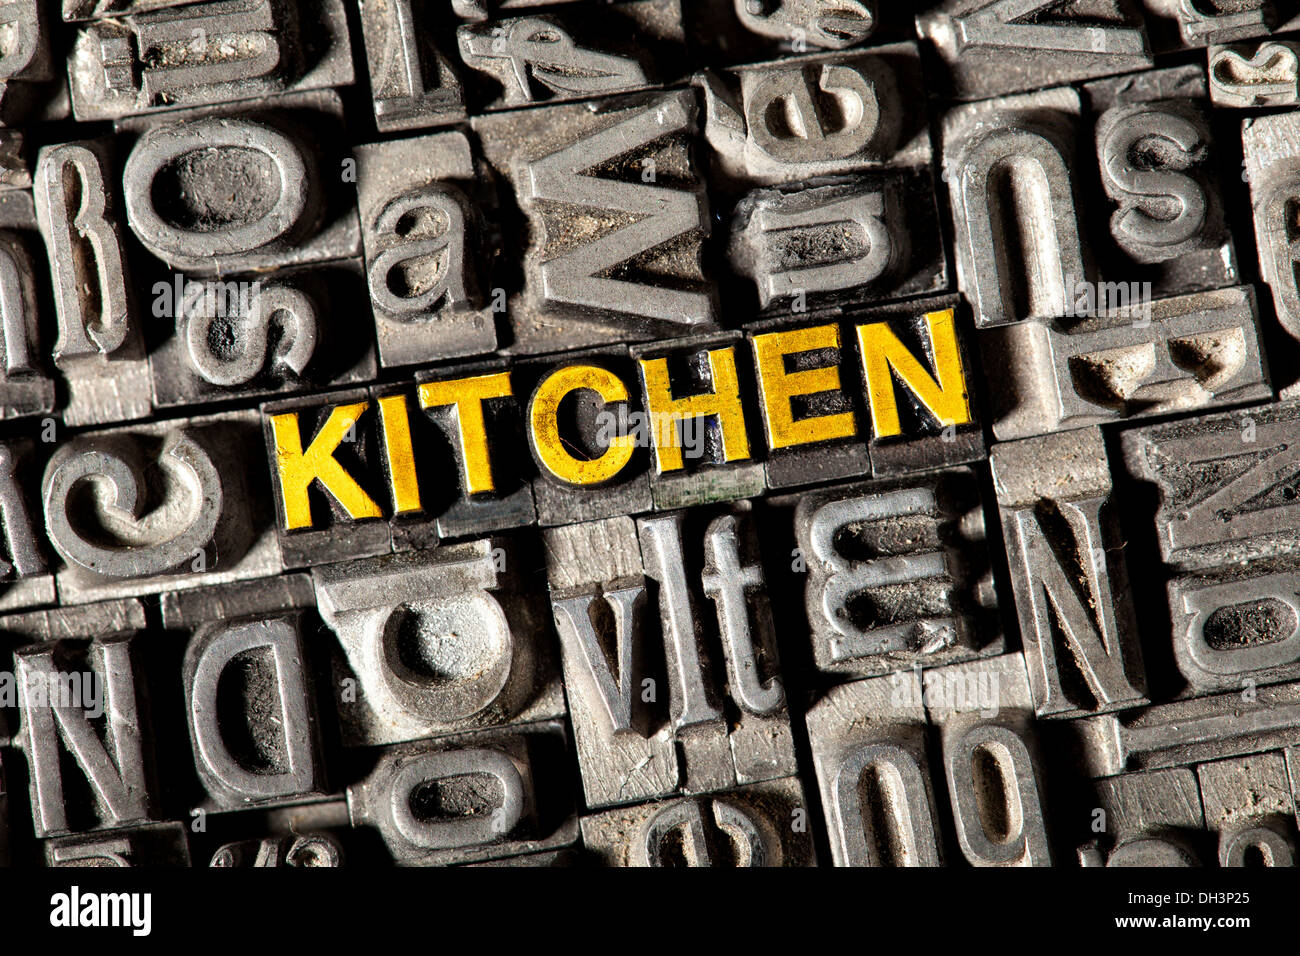 Old lead letters forming the word u0027KITCHENu0027